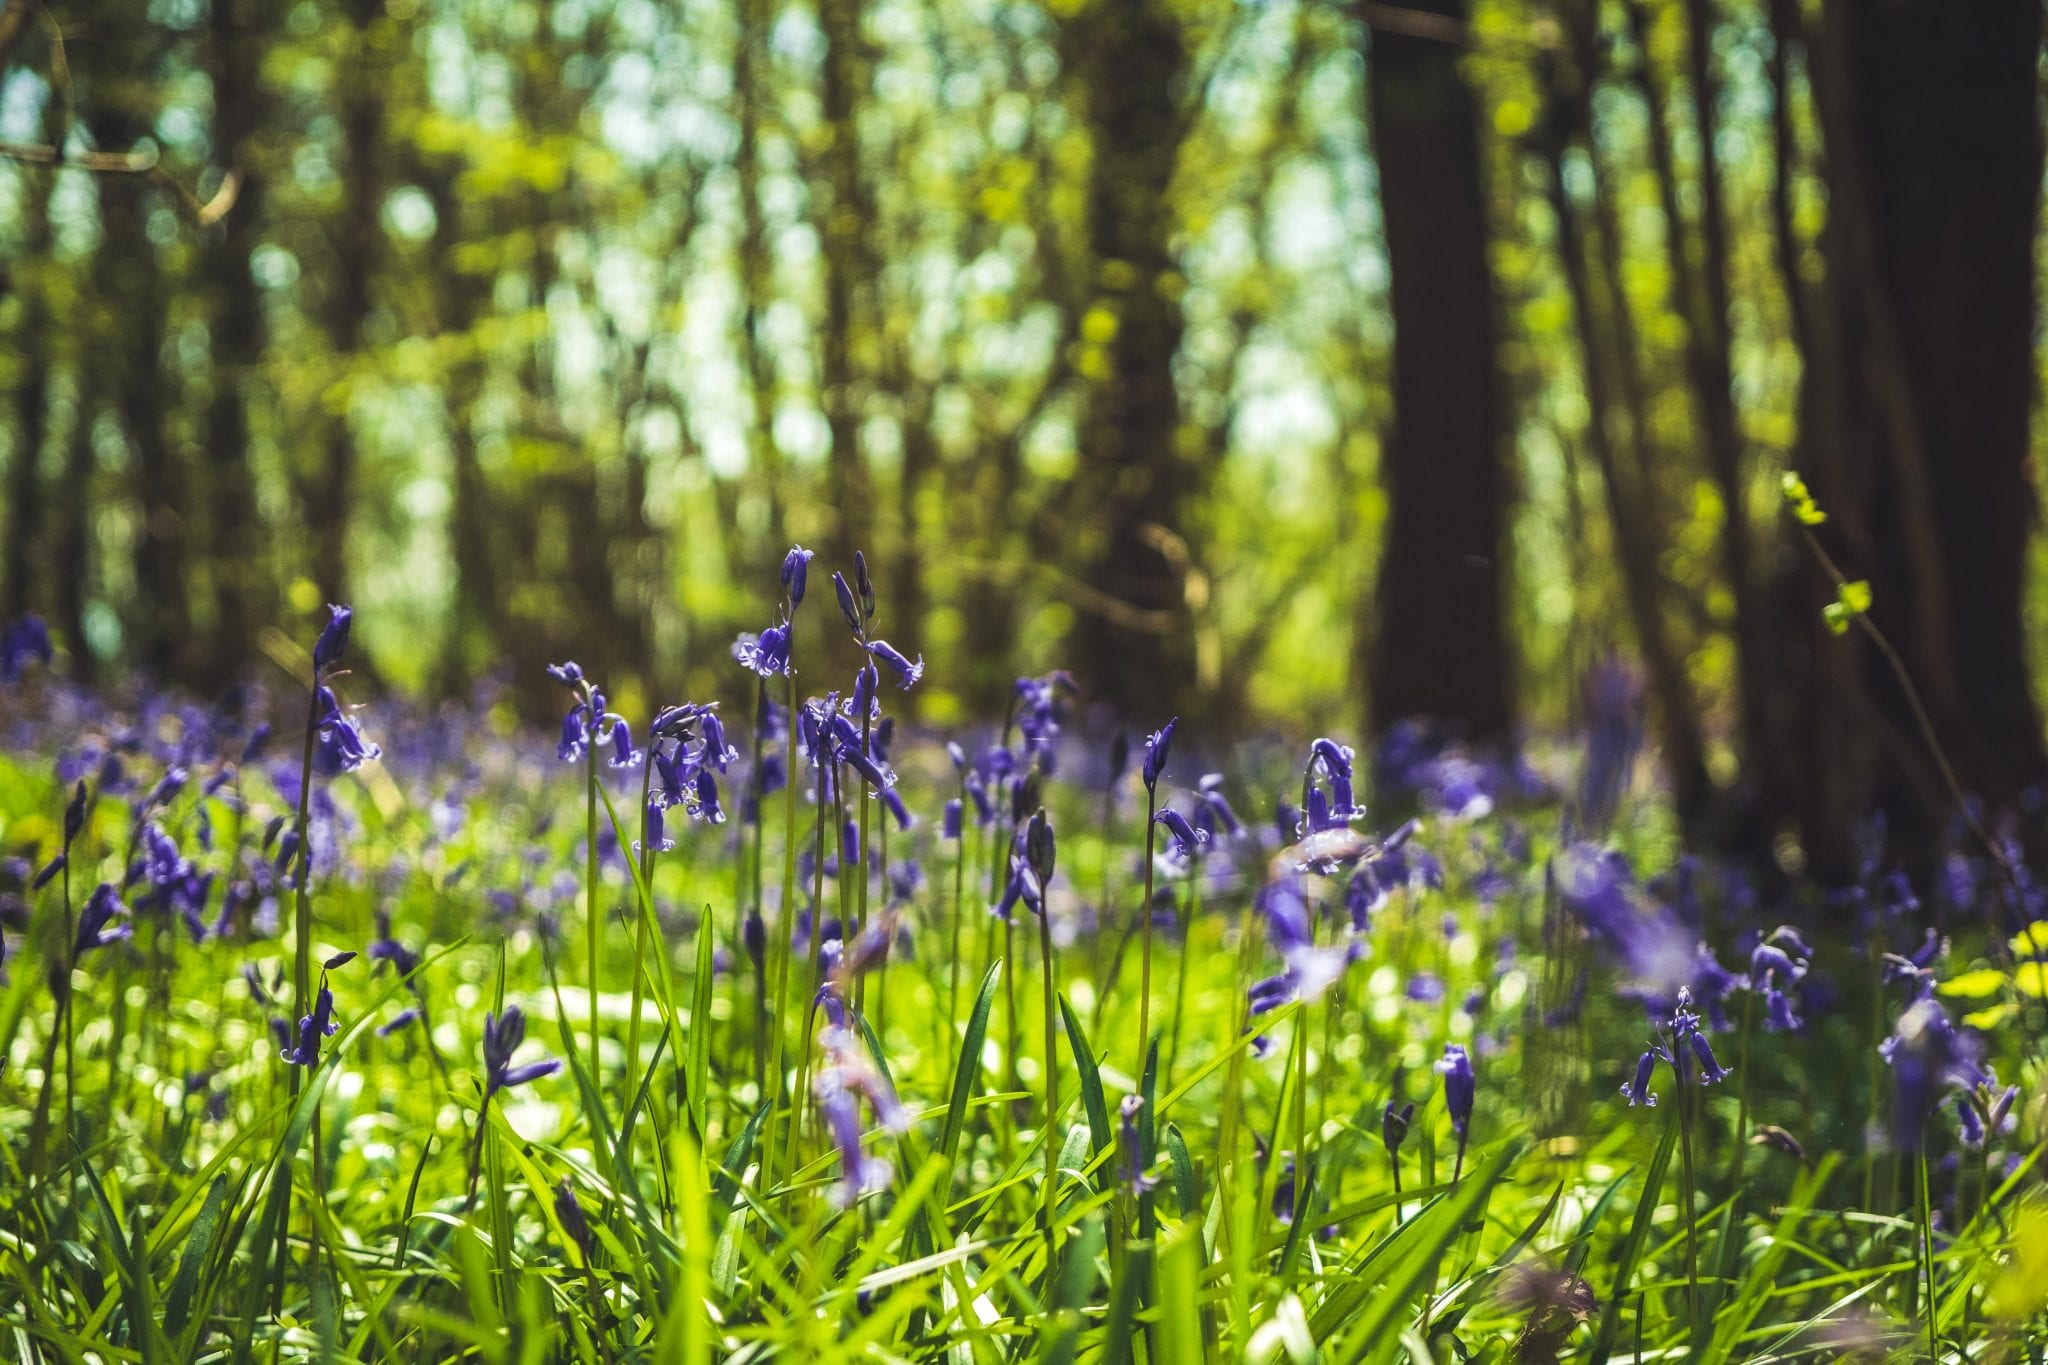 Lady's Wood woodland and grounds in the Spring time showing bluebells